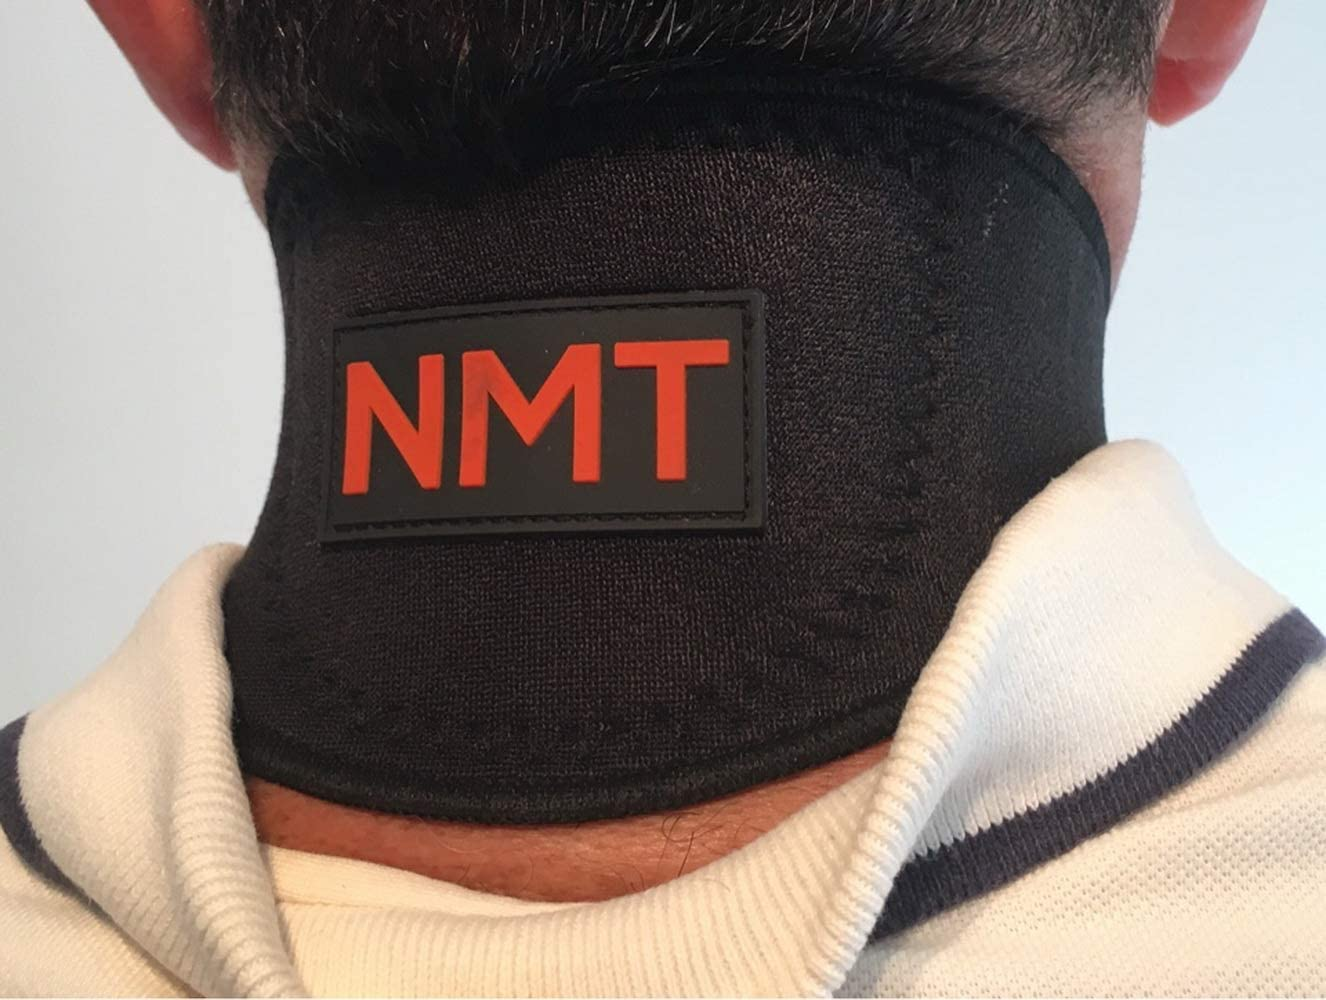 Neck Wrap by NMT ~ Pain Relief for Women and Men, Sleep Apnea, Arthritis, Migraine, Headache, Health, Swelling, Stiff ~ Portable Black Brace ~ New Flexible Cervical Support Collar ~ Physical Therapy: Health & Personal Care